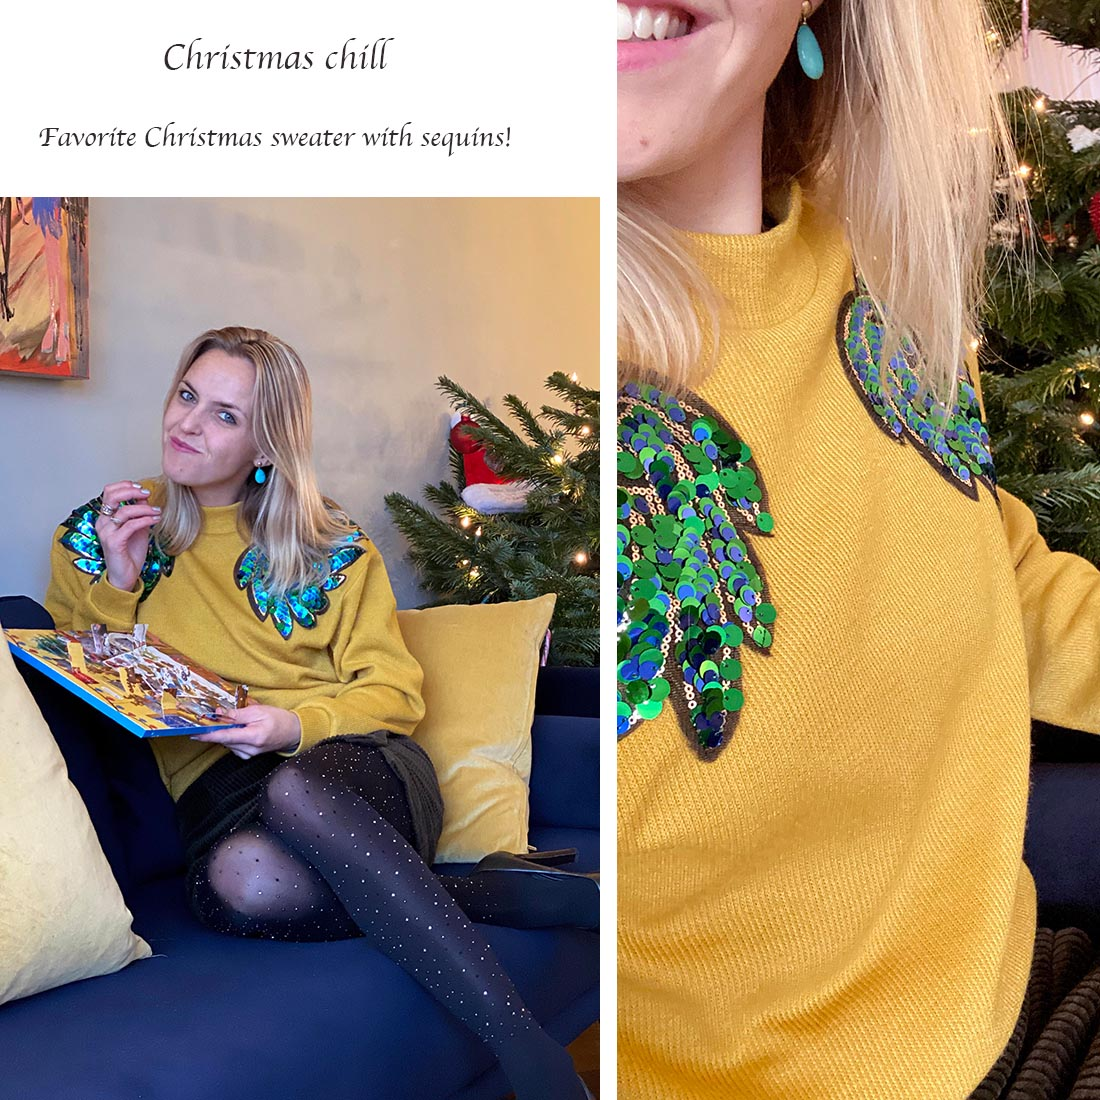 What to wear for Christmas - Christmas chill